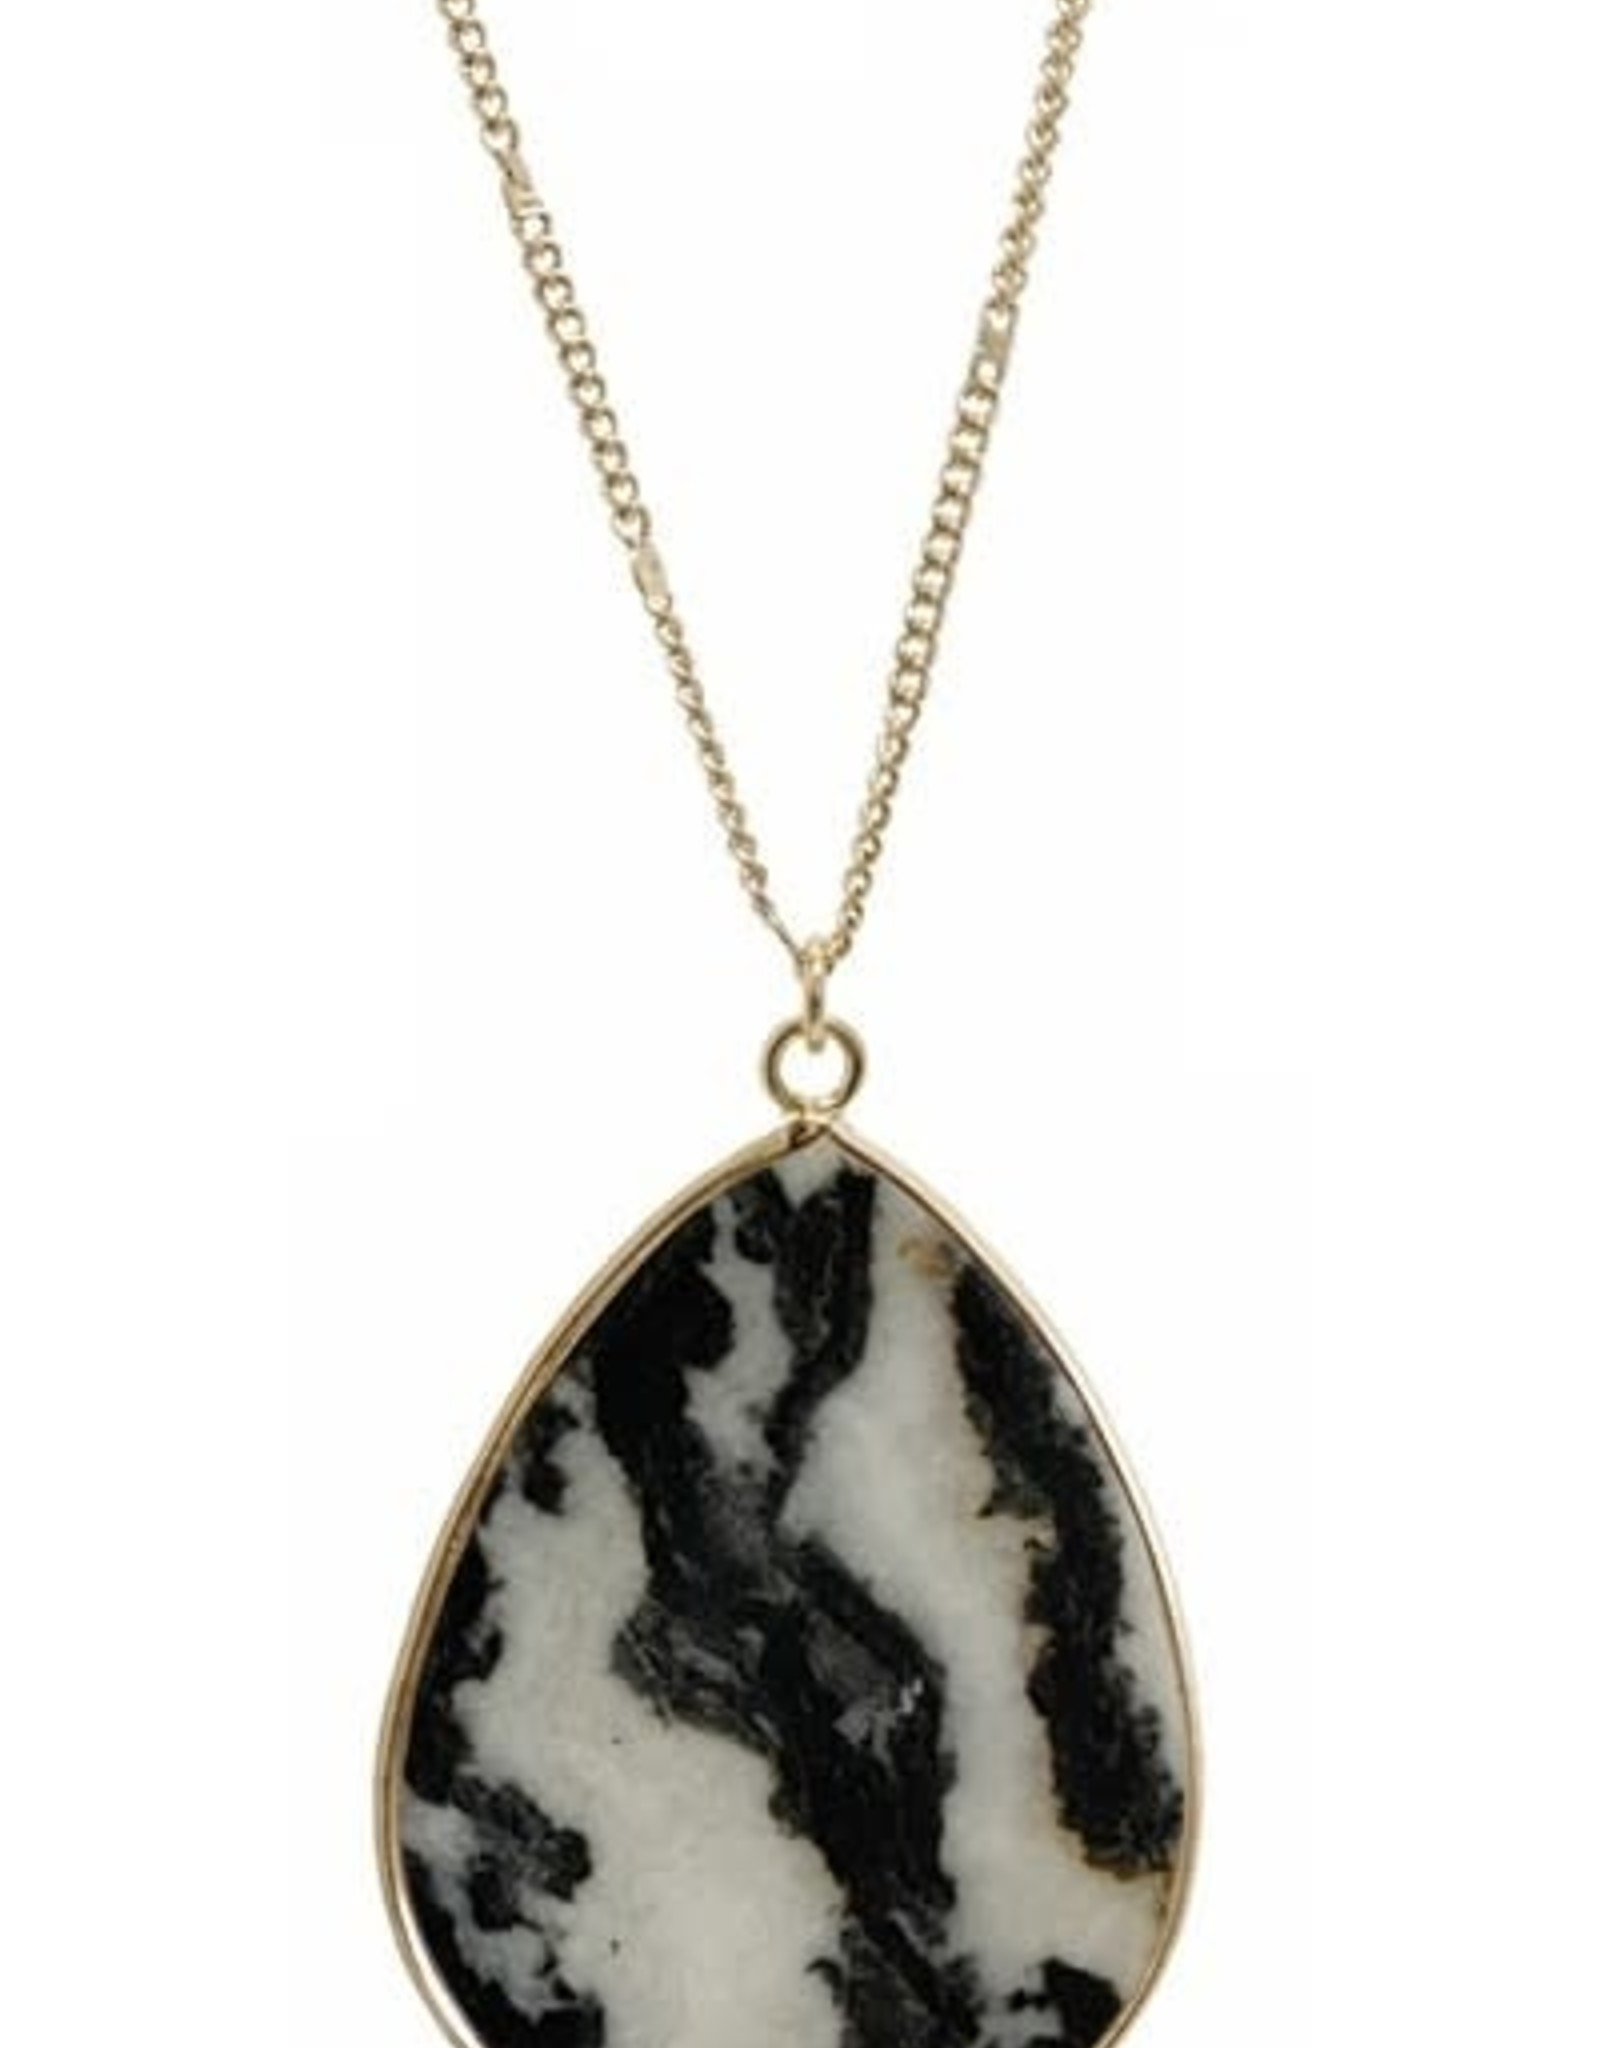 NECKLACE NATURAL STONE TEARDROP GOLD DOT CHAIN